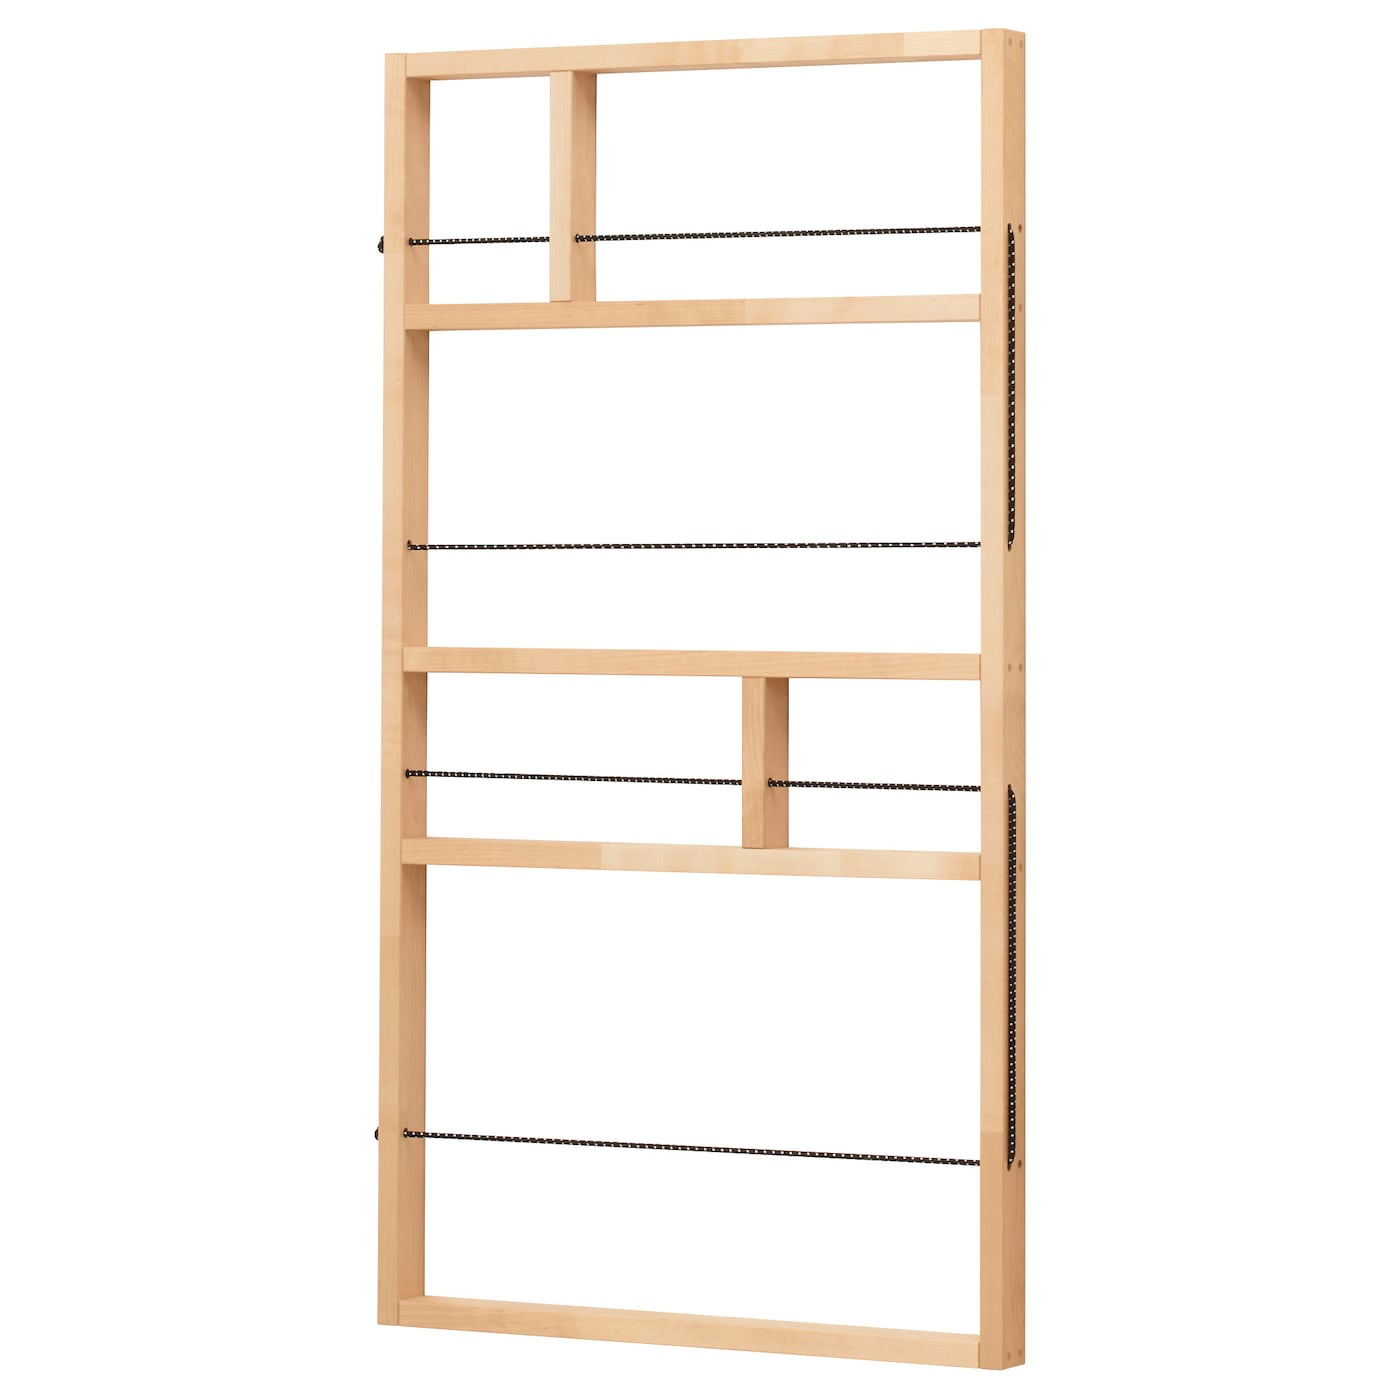 ypperlig wall shelf birch 54x100 cm ikea. Black Bedroom Furniture Sets. Home Design Ideas